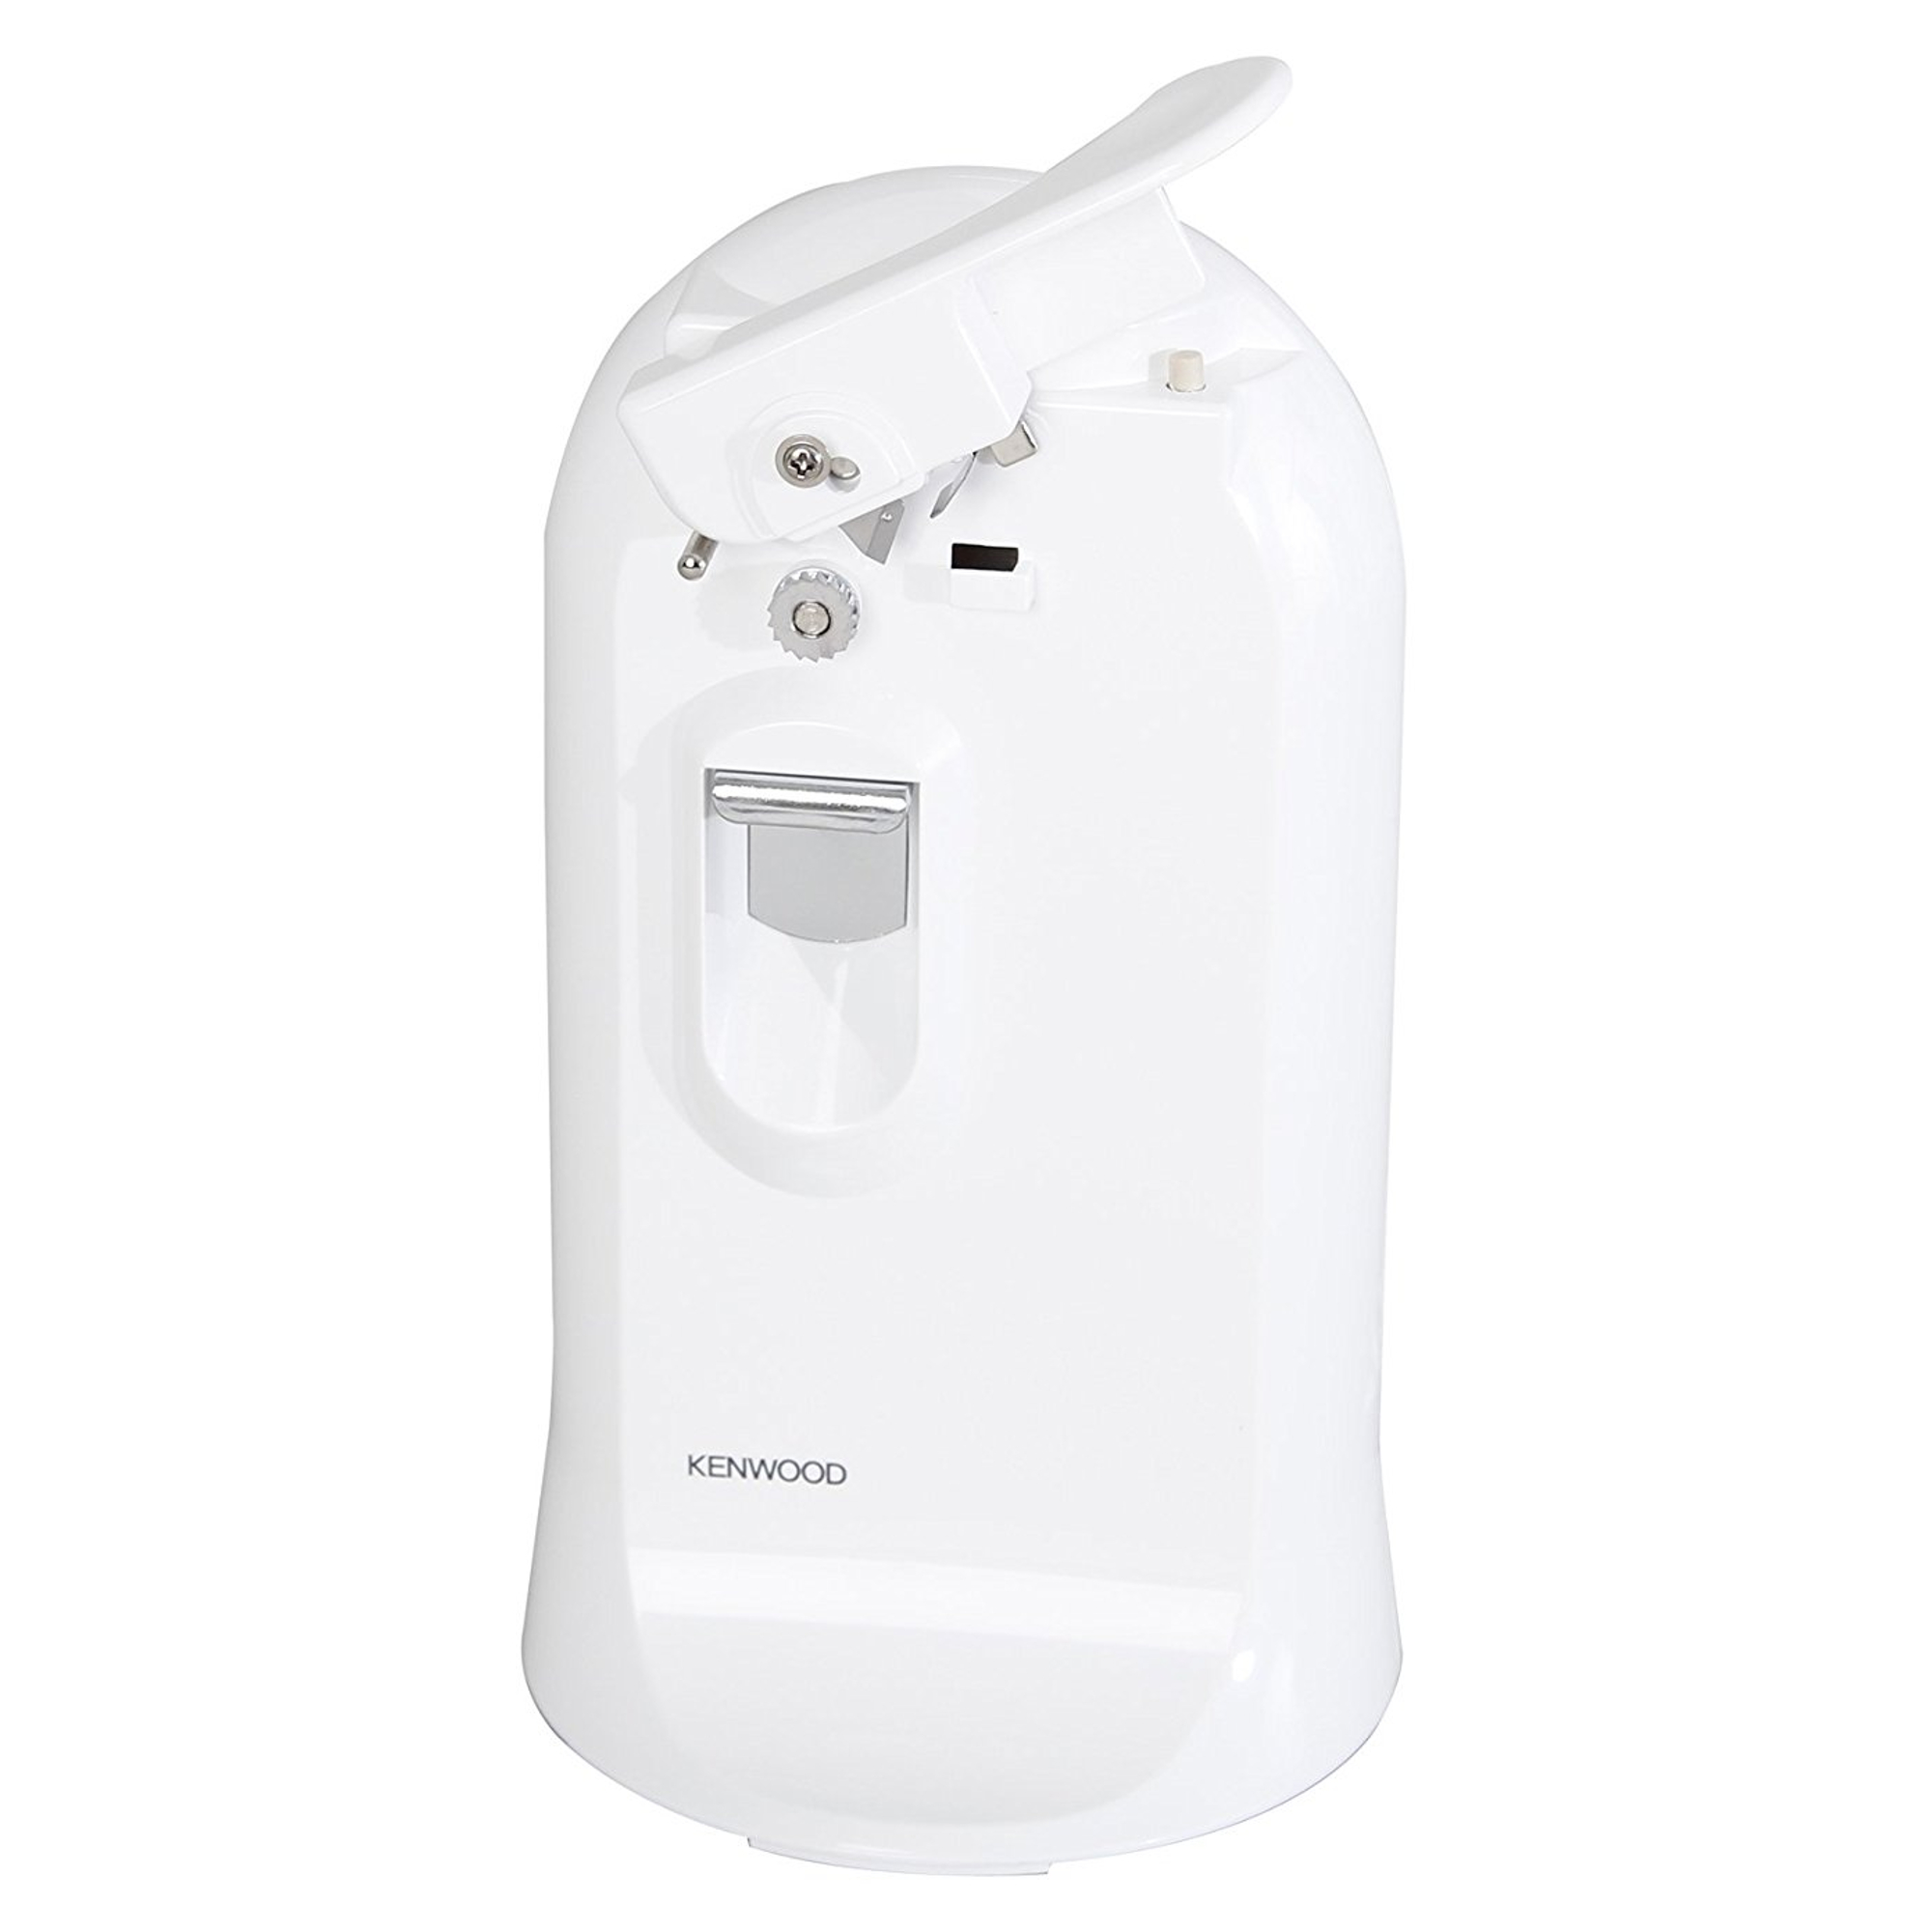 Kenwood C0600 3 In 1 Automatic Can Opener White Hughes